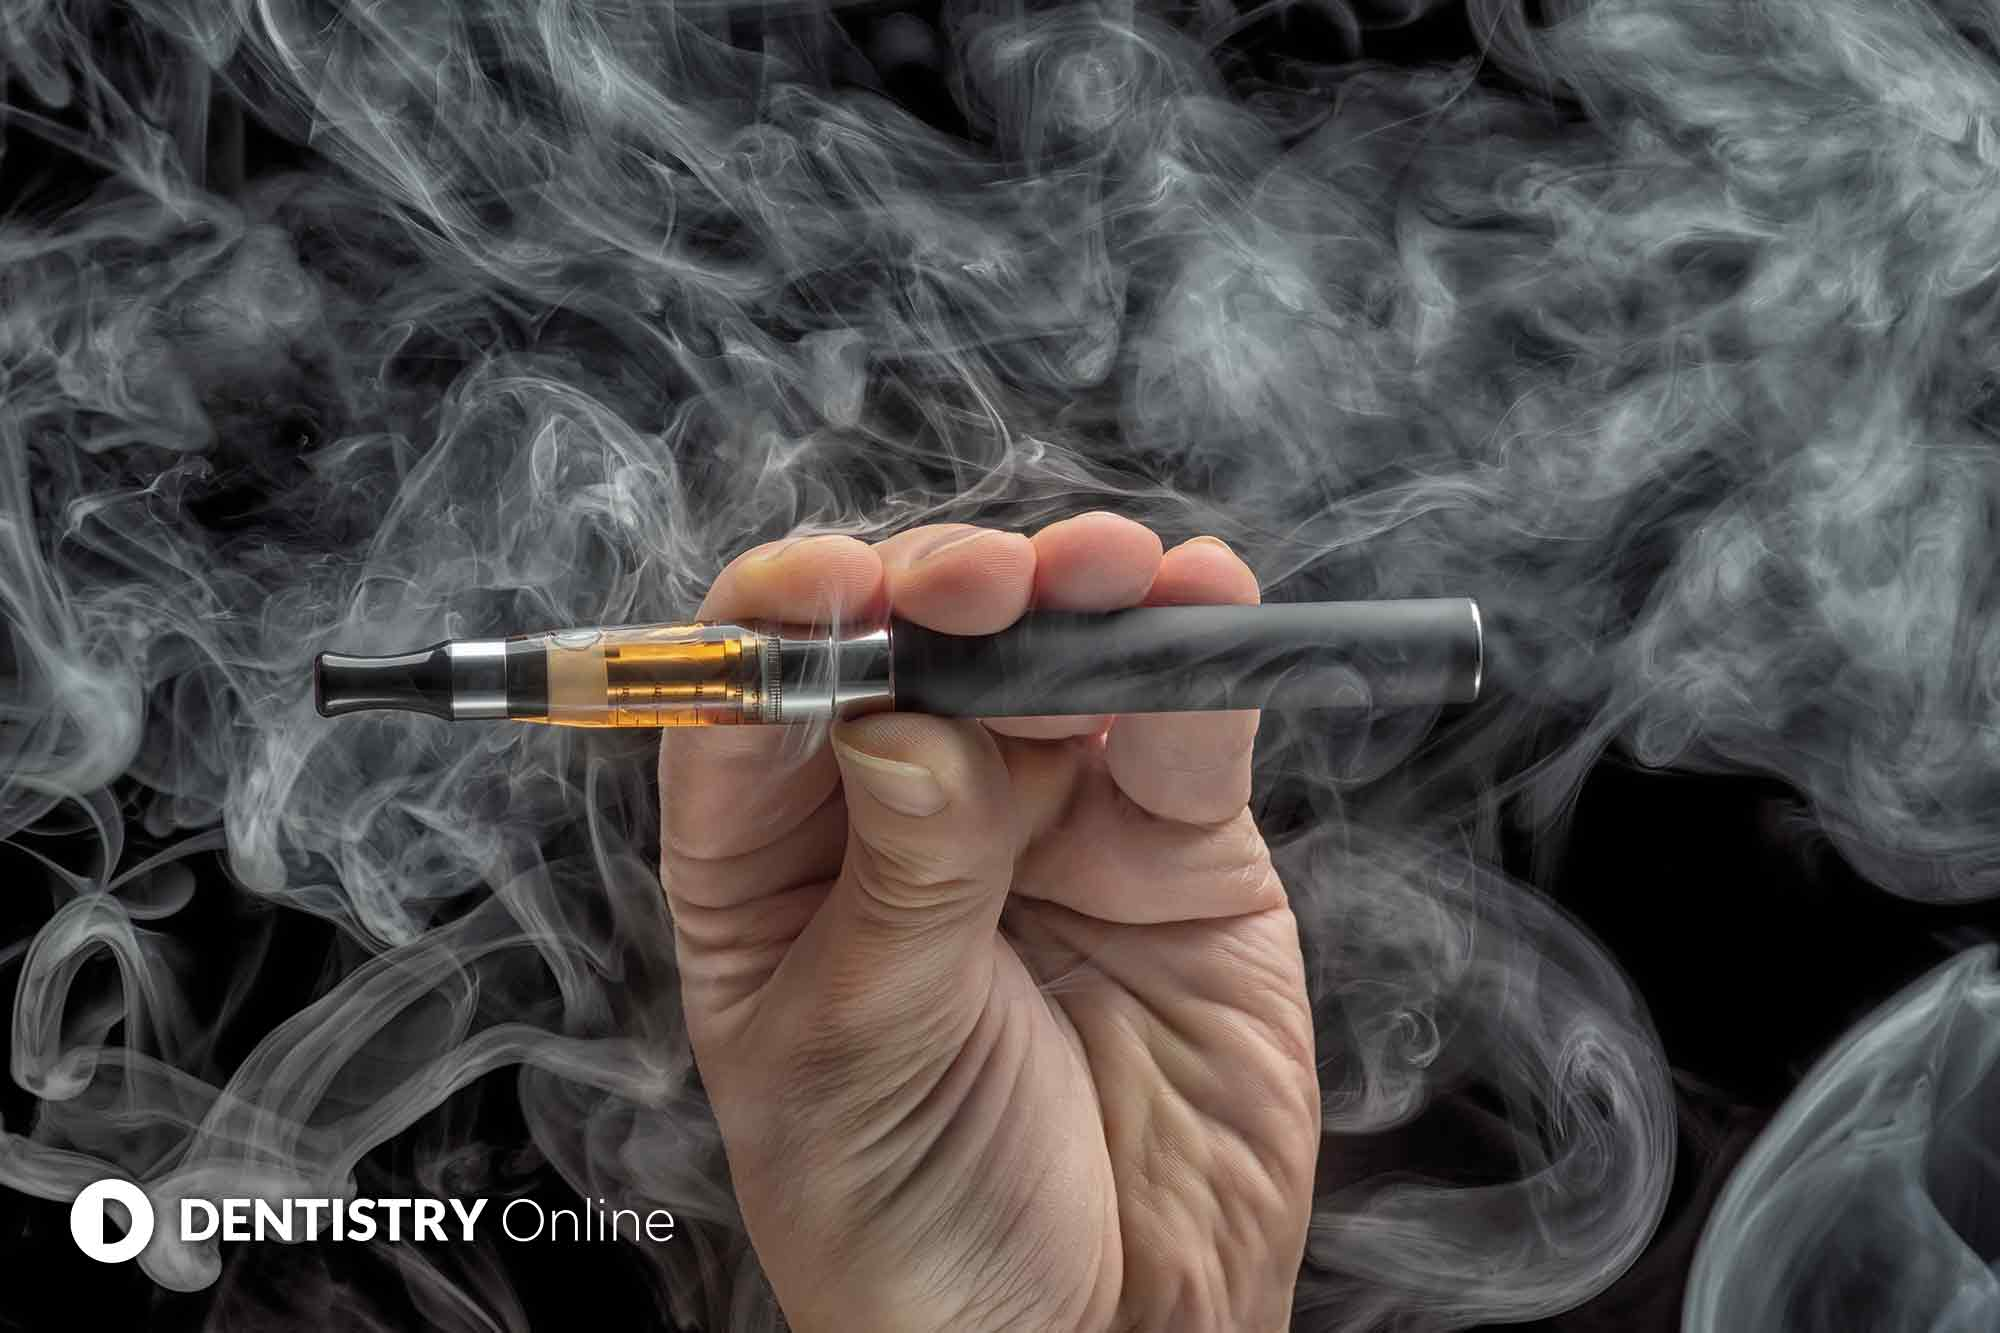 An e-cigarette is 70% more effective in helping smokers ditch their habit than nicotine replacement therapy, new research reveals